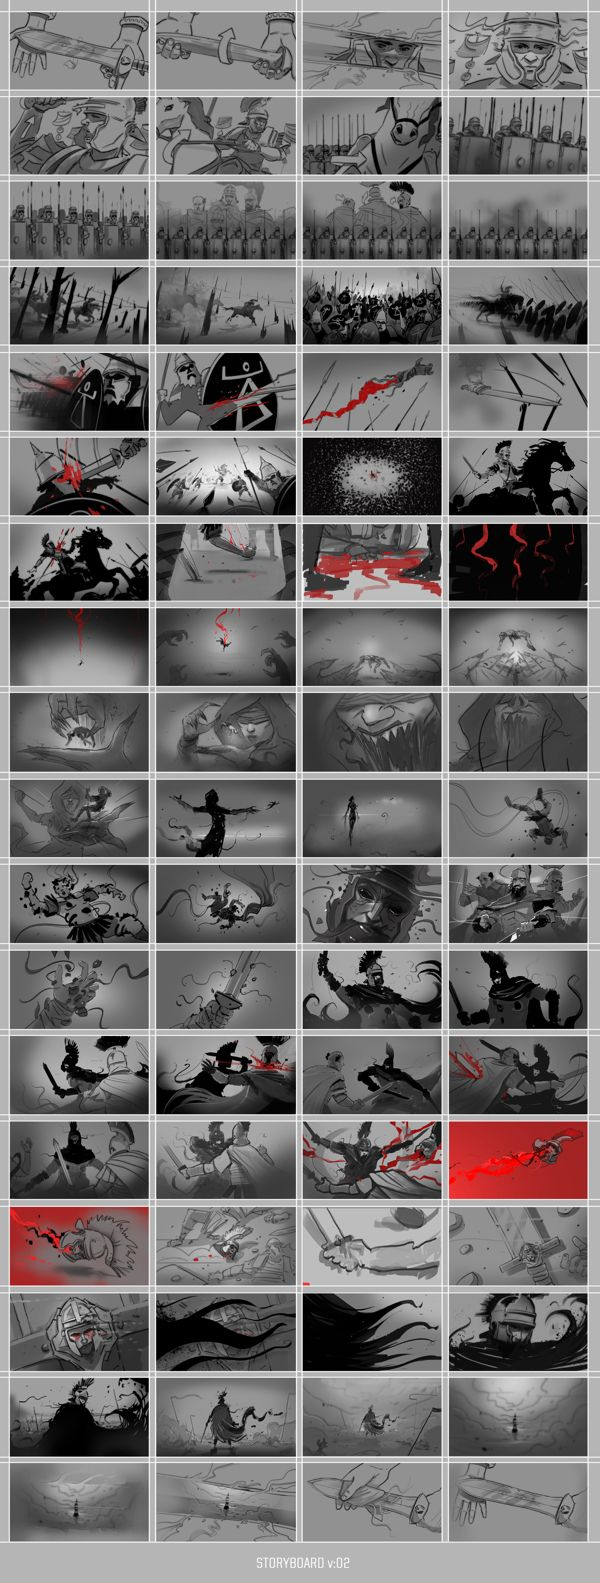 Ryse: Son of Rome cinematic by Platige Image , via Behance